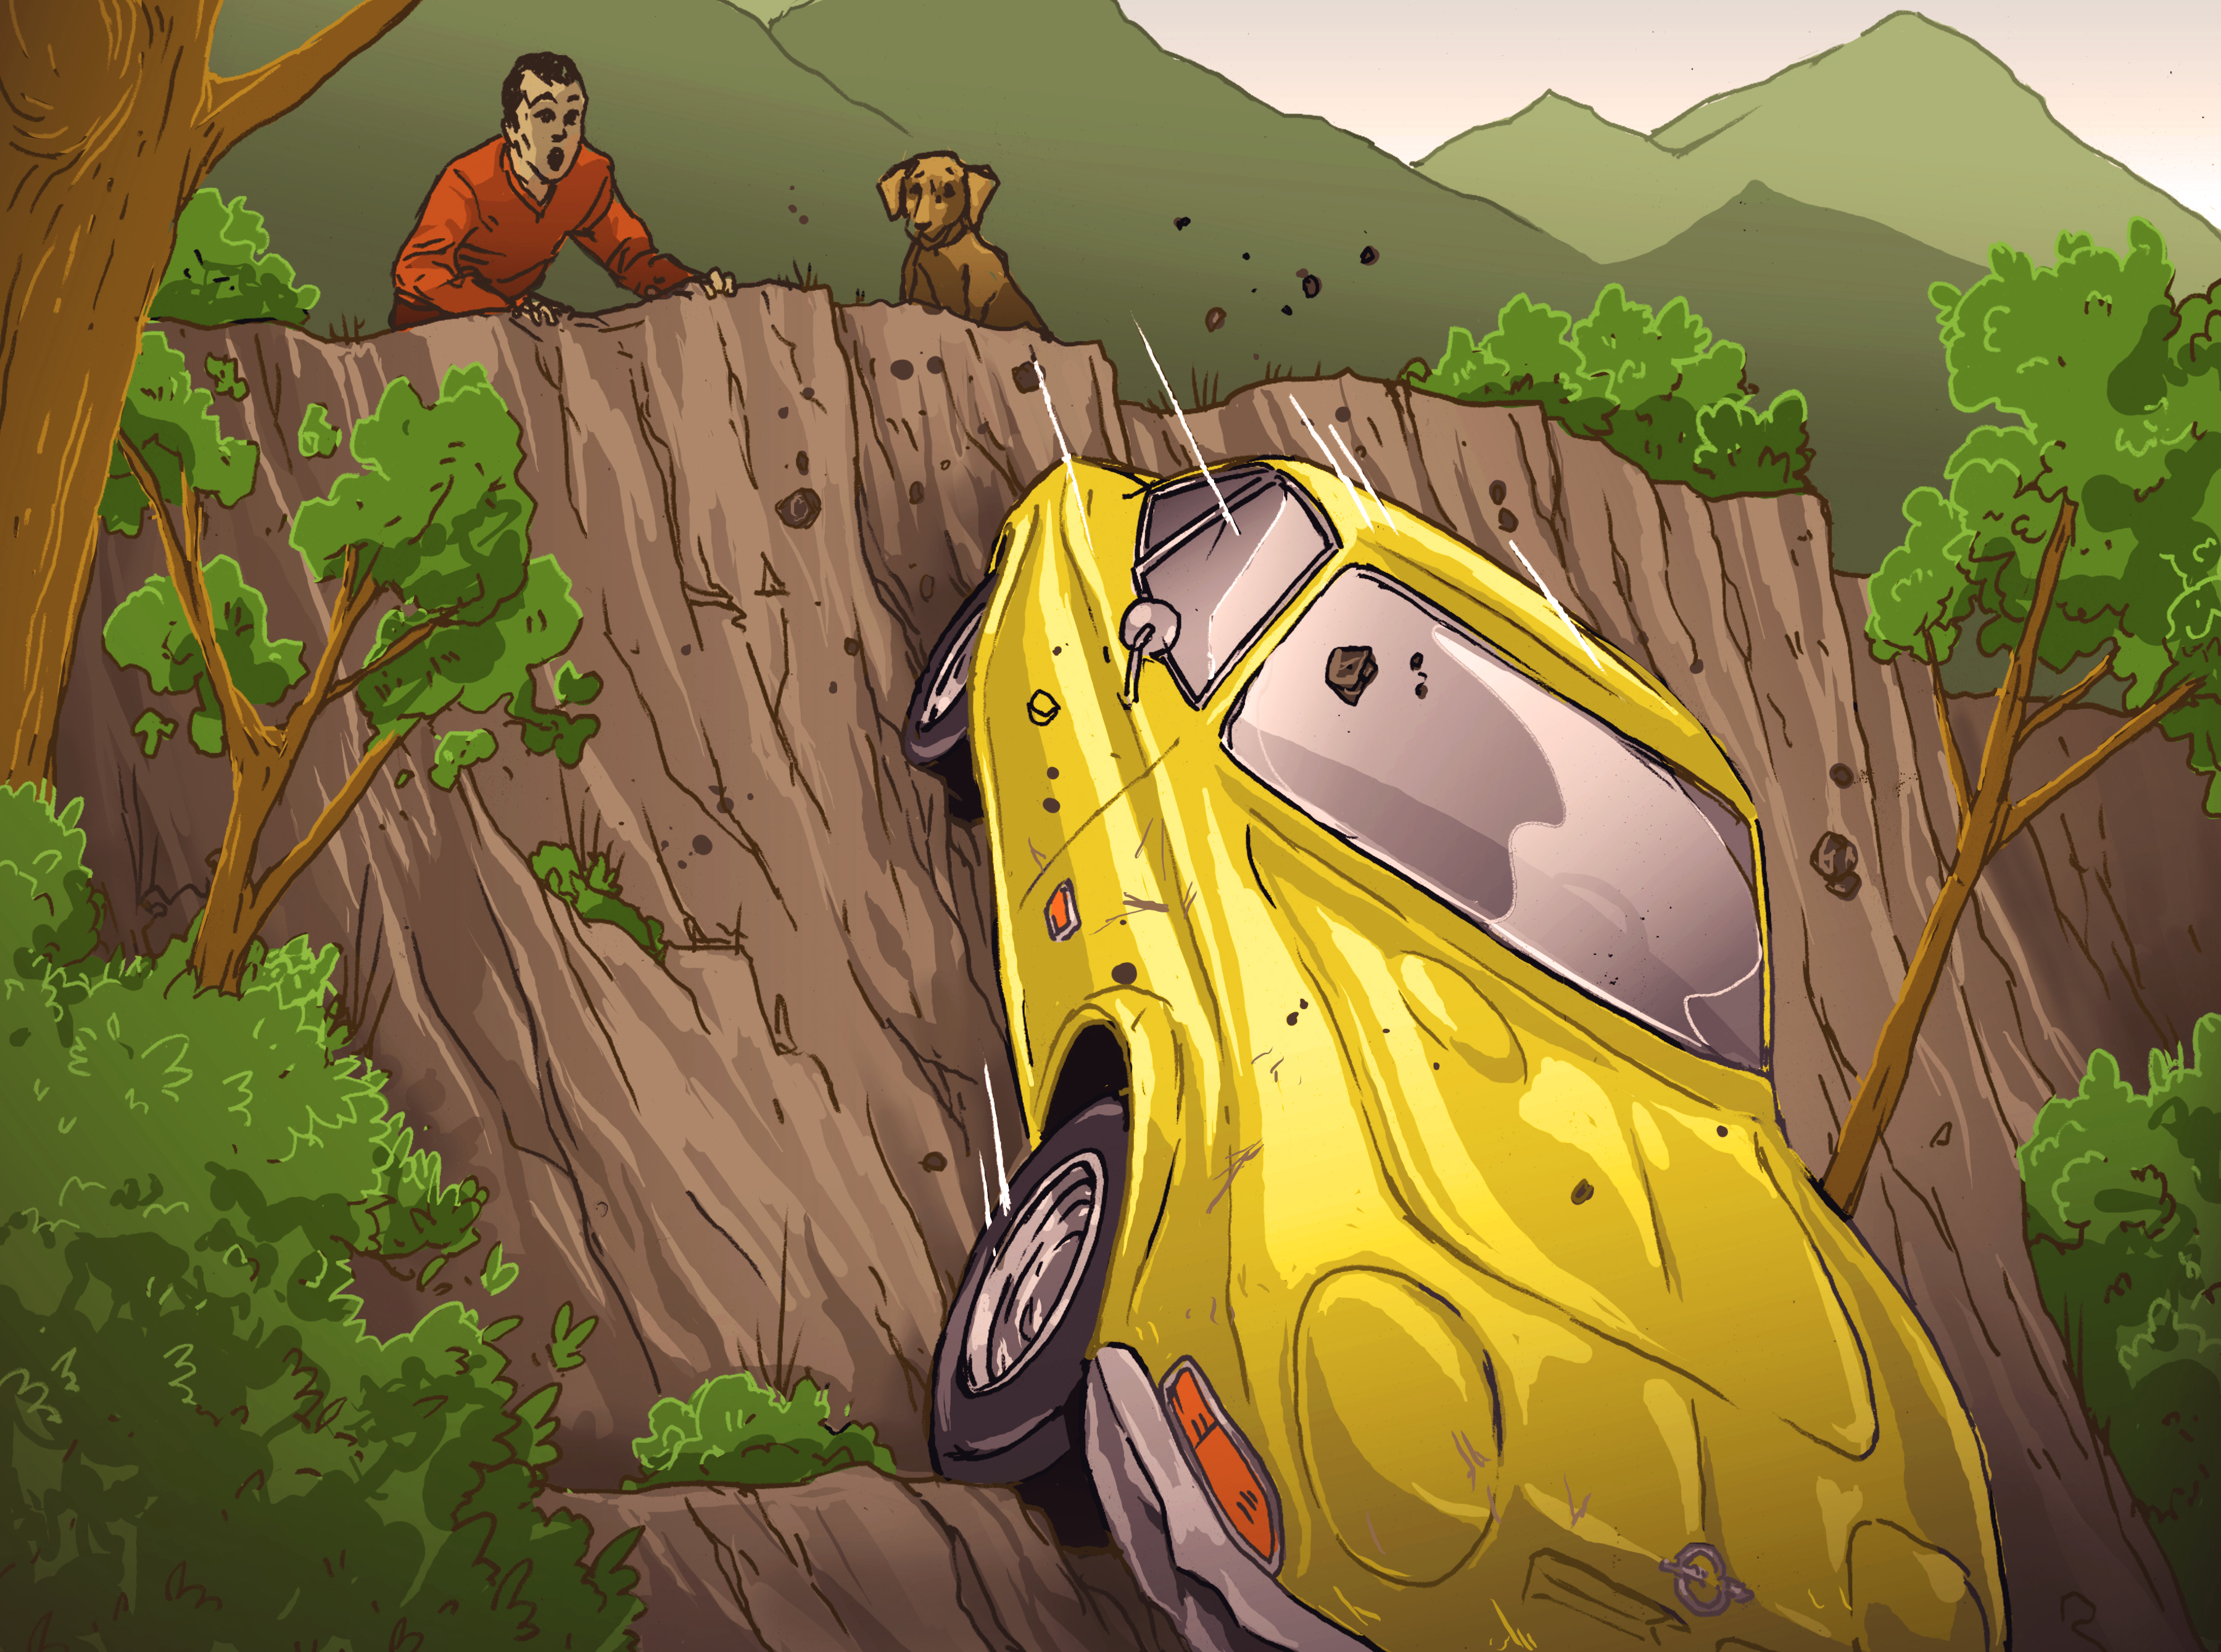 Losses and Lessons Cliffhanger: '69 Opel owner and his dog escape just in time thumbnail